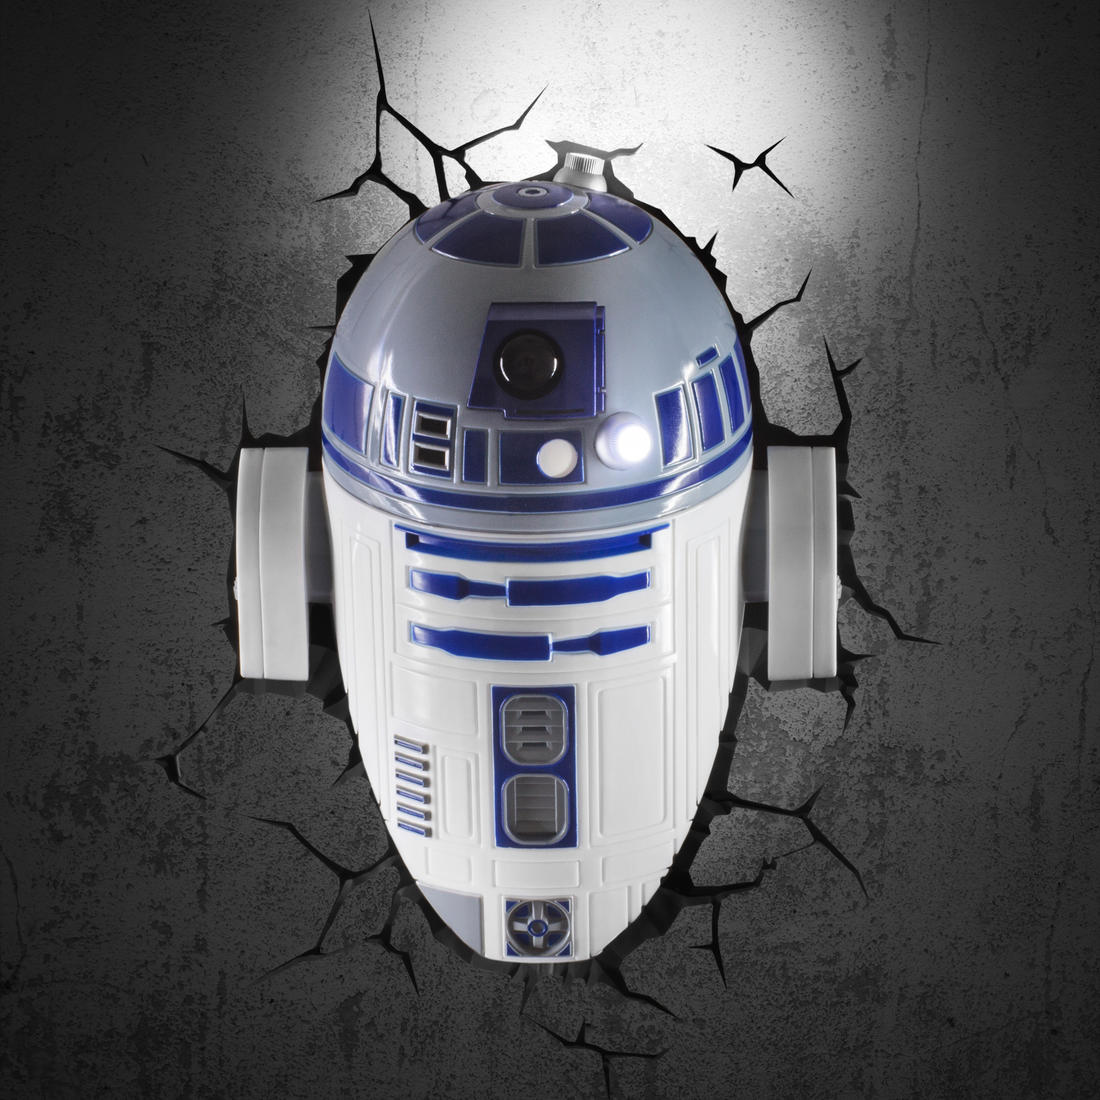 star wars wall lamp r2d2 getdigital. Black Bedroom Furniture Sets. Home Design Ideas